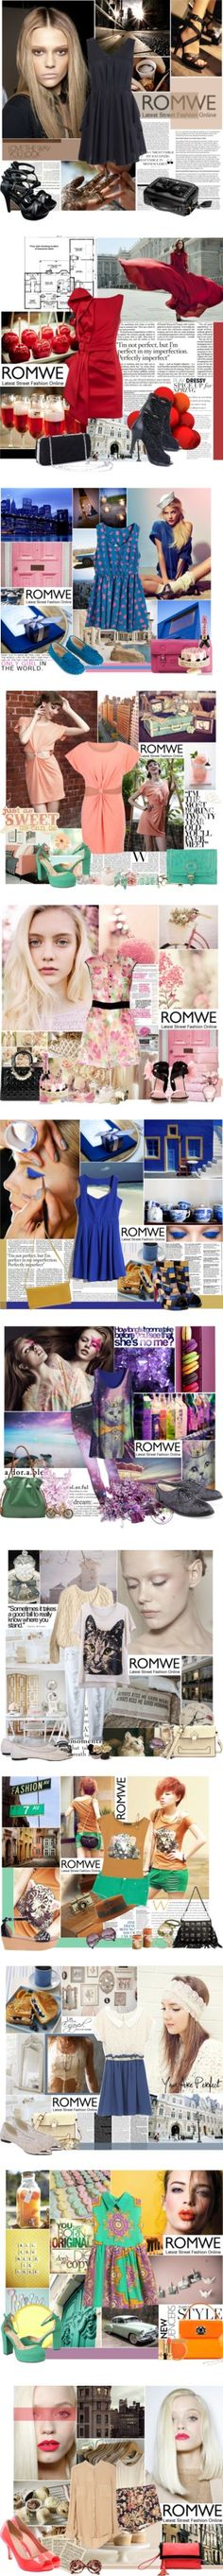 """Romwe.com :)"" by taritelemnar ❤ liked on Polyvore"